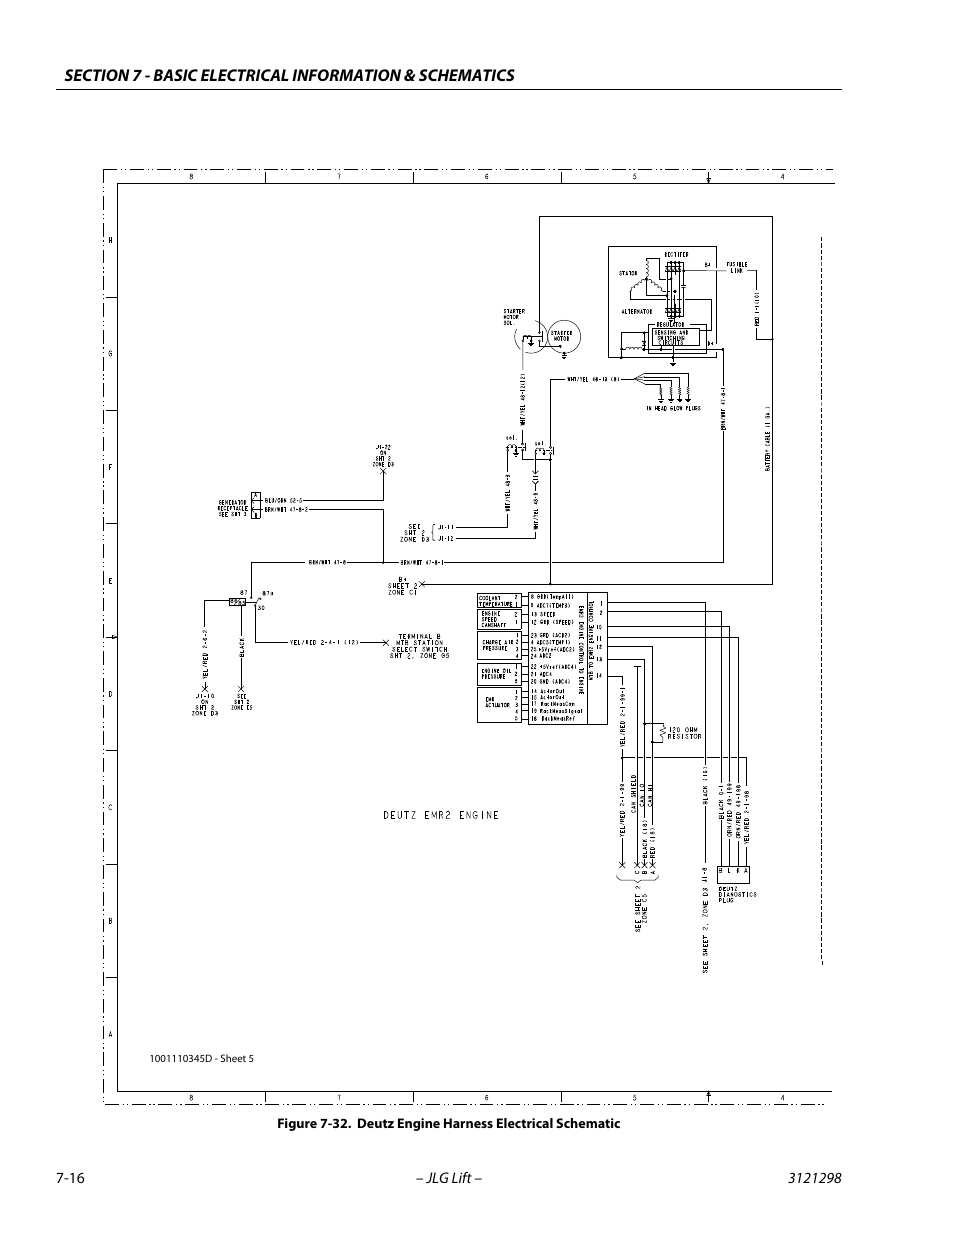 Deutz Engine Schematics Wiring Diagrams Electrolux Microwave E30m075hps Diagram Harness Electrical Schematic 16 Jlg 660sj Service Rh Manualsdir Com 1011f